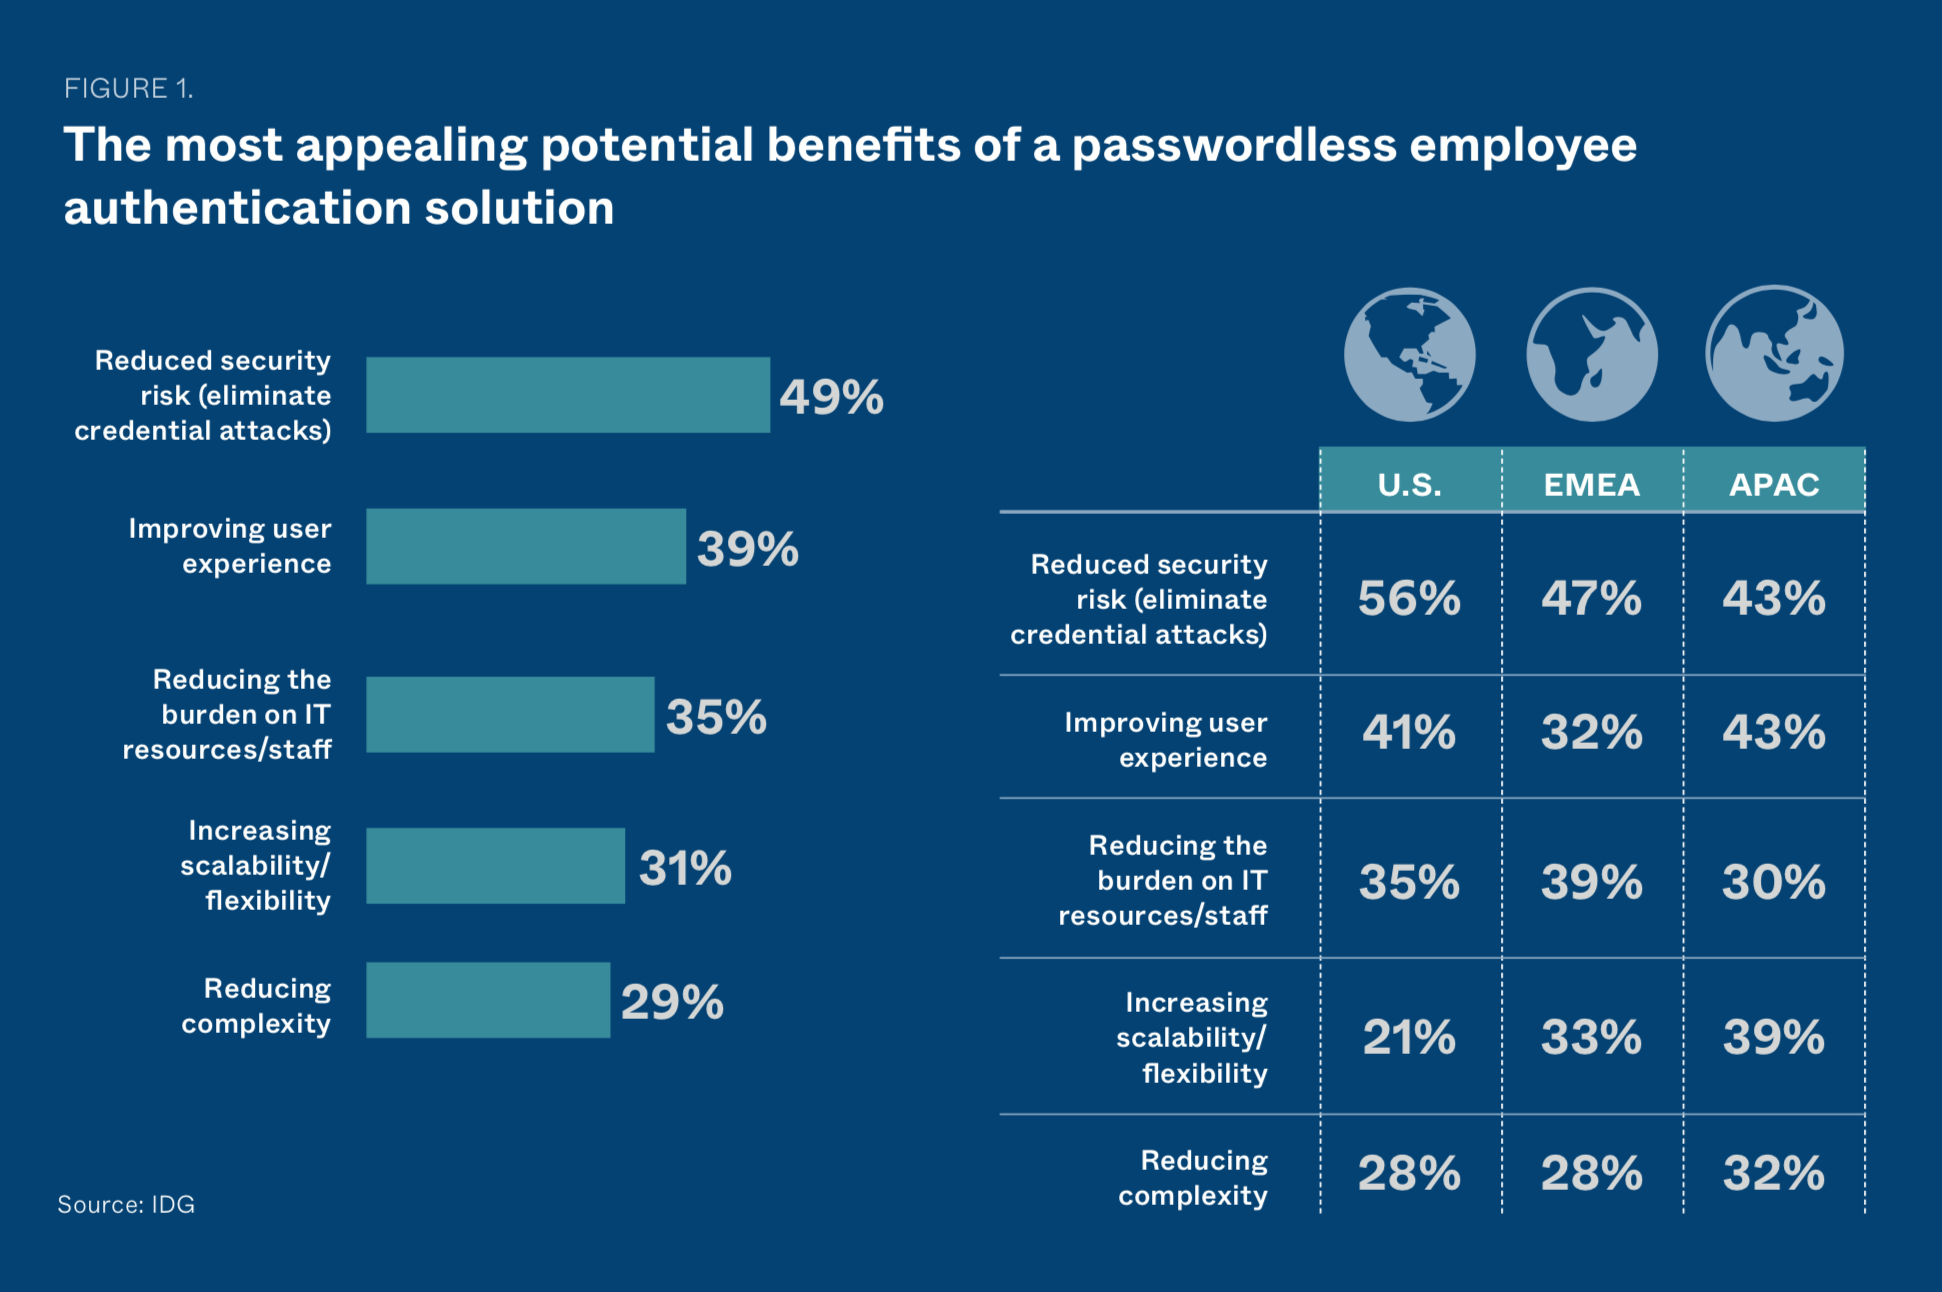 Potential benefits of a passwordless employee authentication solution